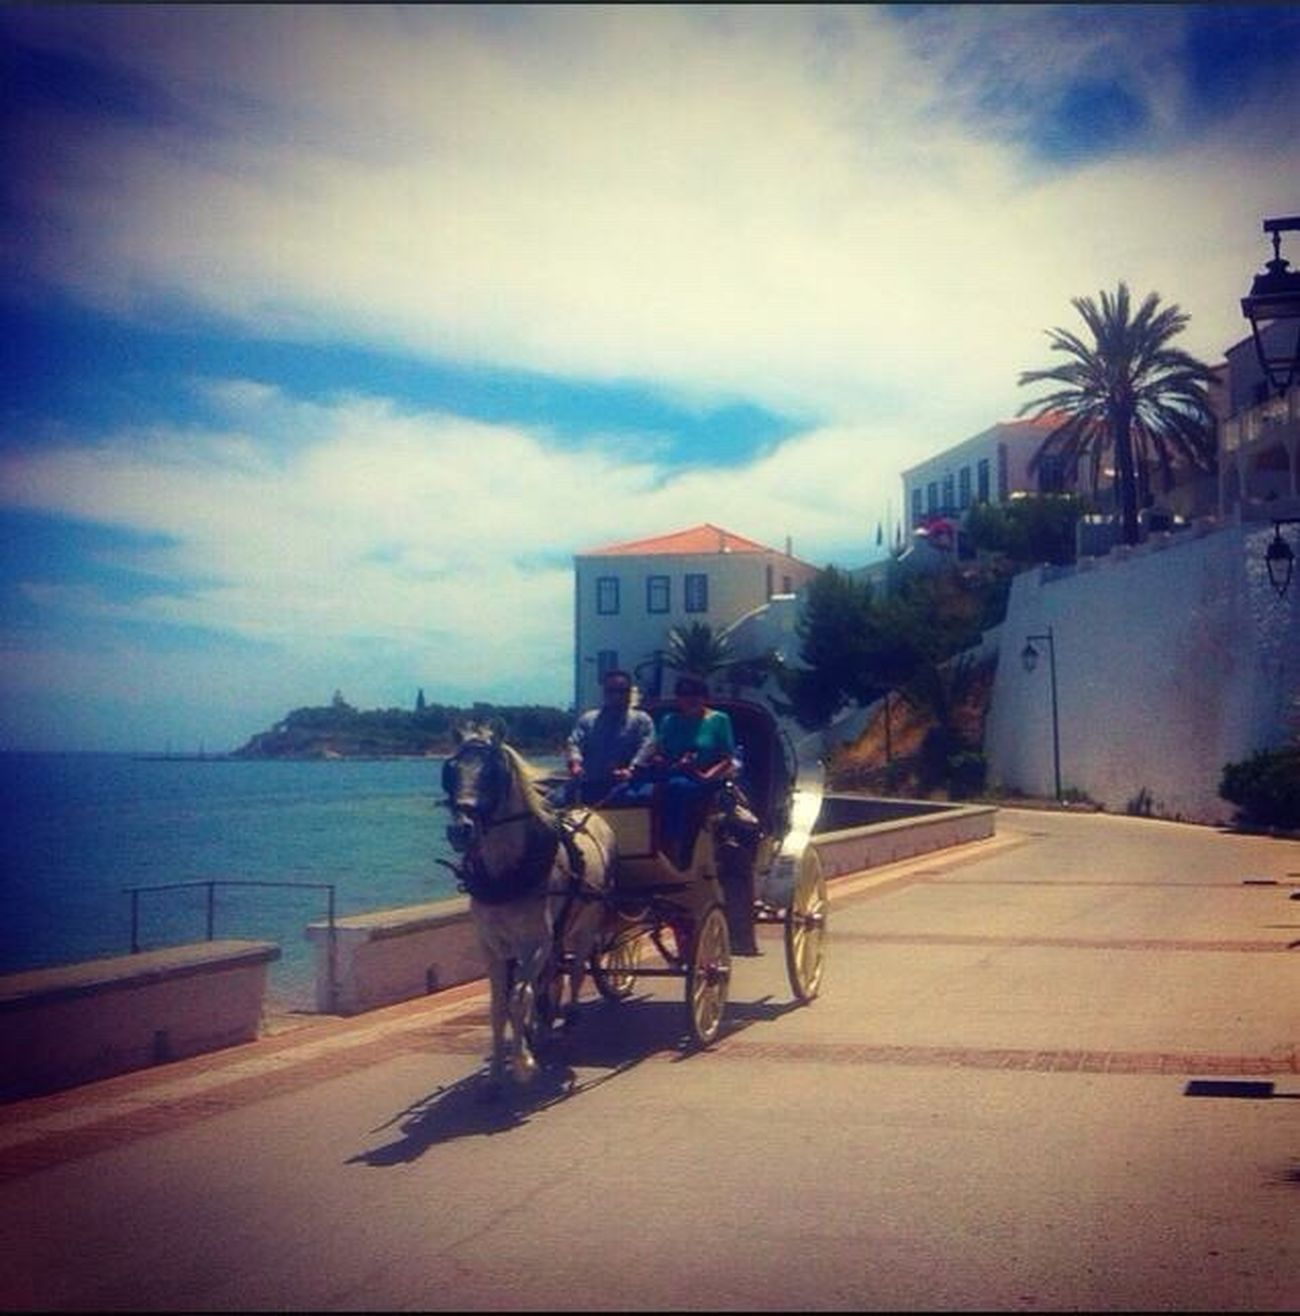 Spetses Island Grecce Summertime Working Animal Horse Cart Real People Island Life Mode Of Transport Travel Destinations Travel Photography